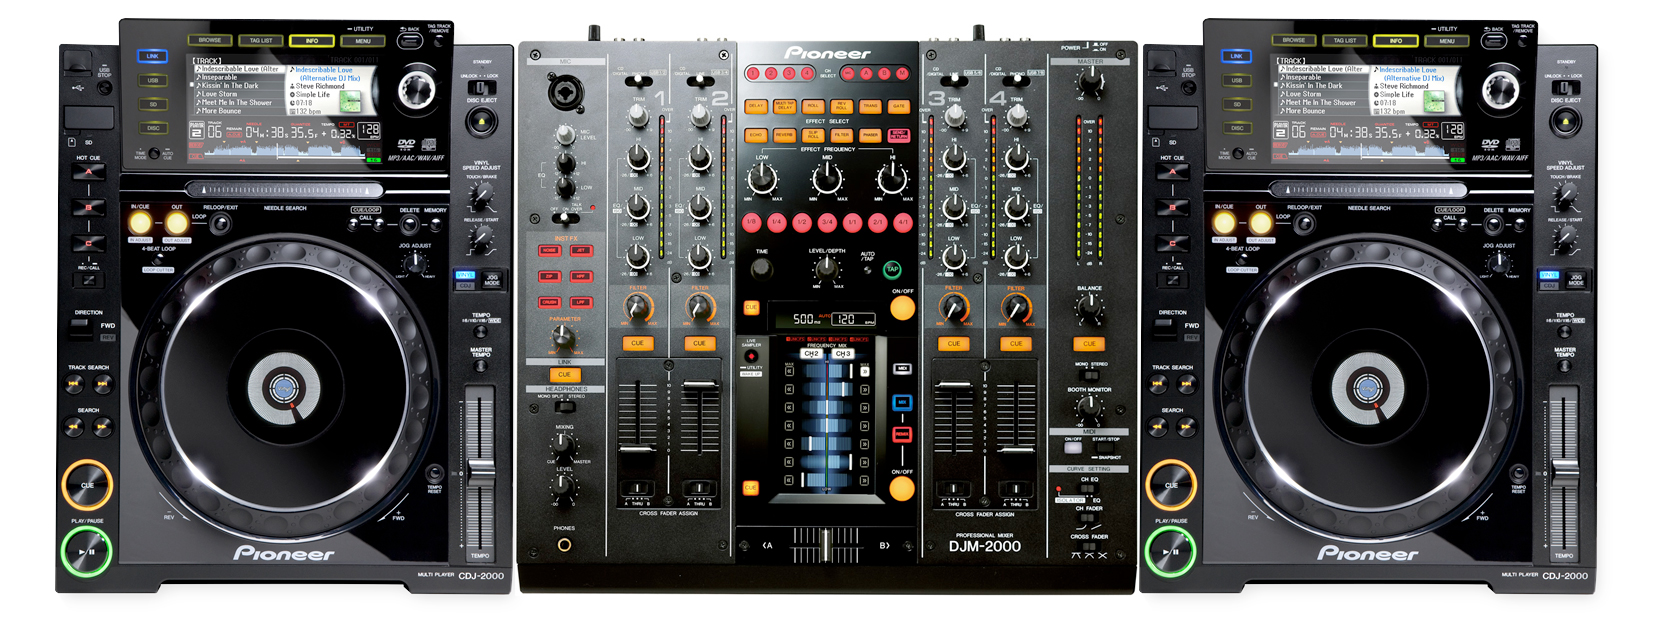 pioneer dj cdj 2000 djm 2000 pack. Black Bedroom Furniture Sets. Home Design Ideas